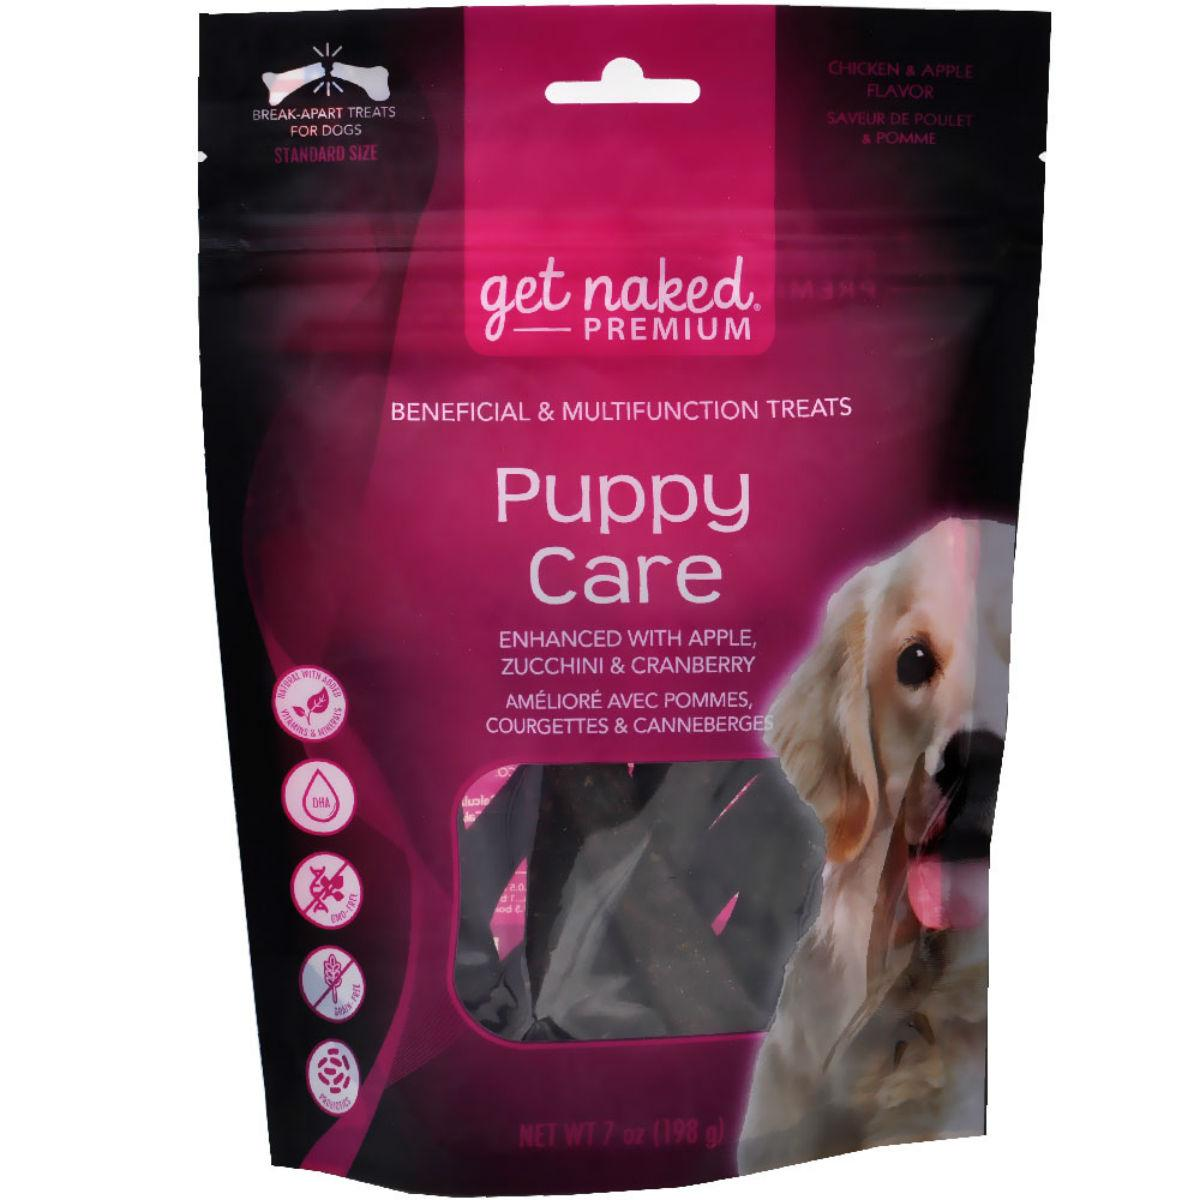 Get Naked Premium Dog Treats - Puppy Care